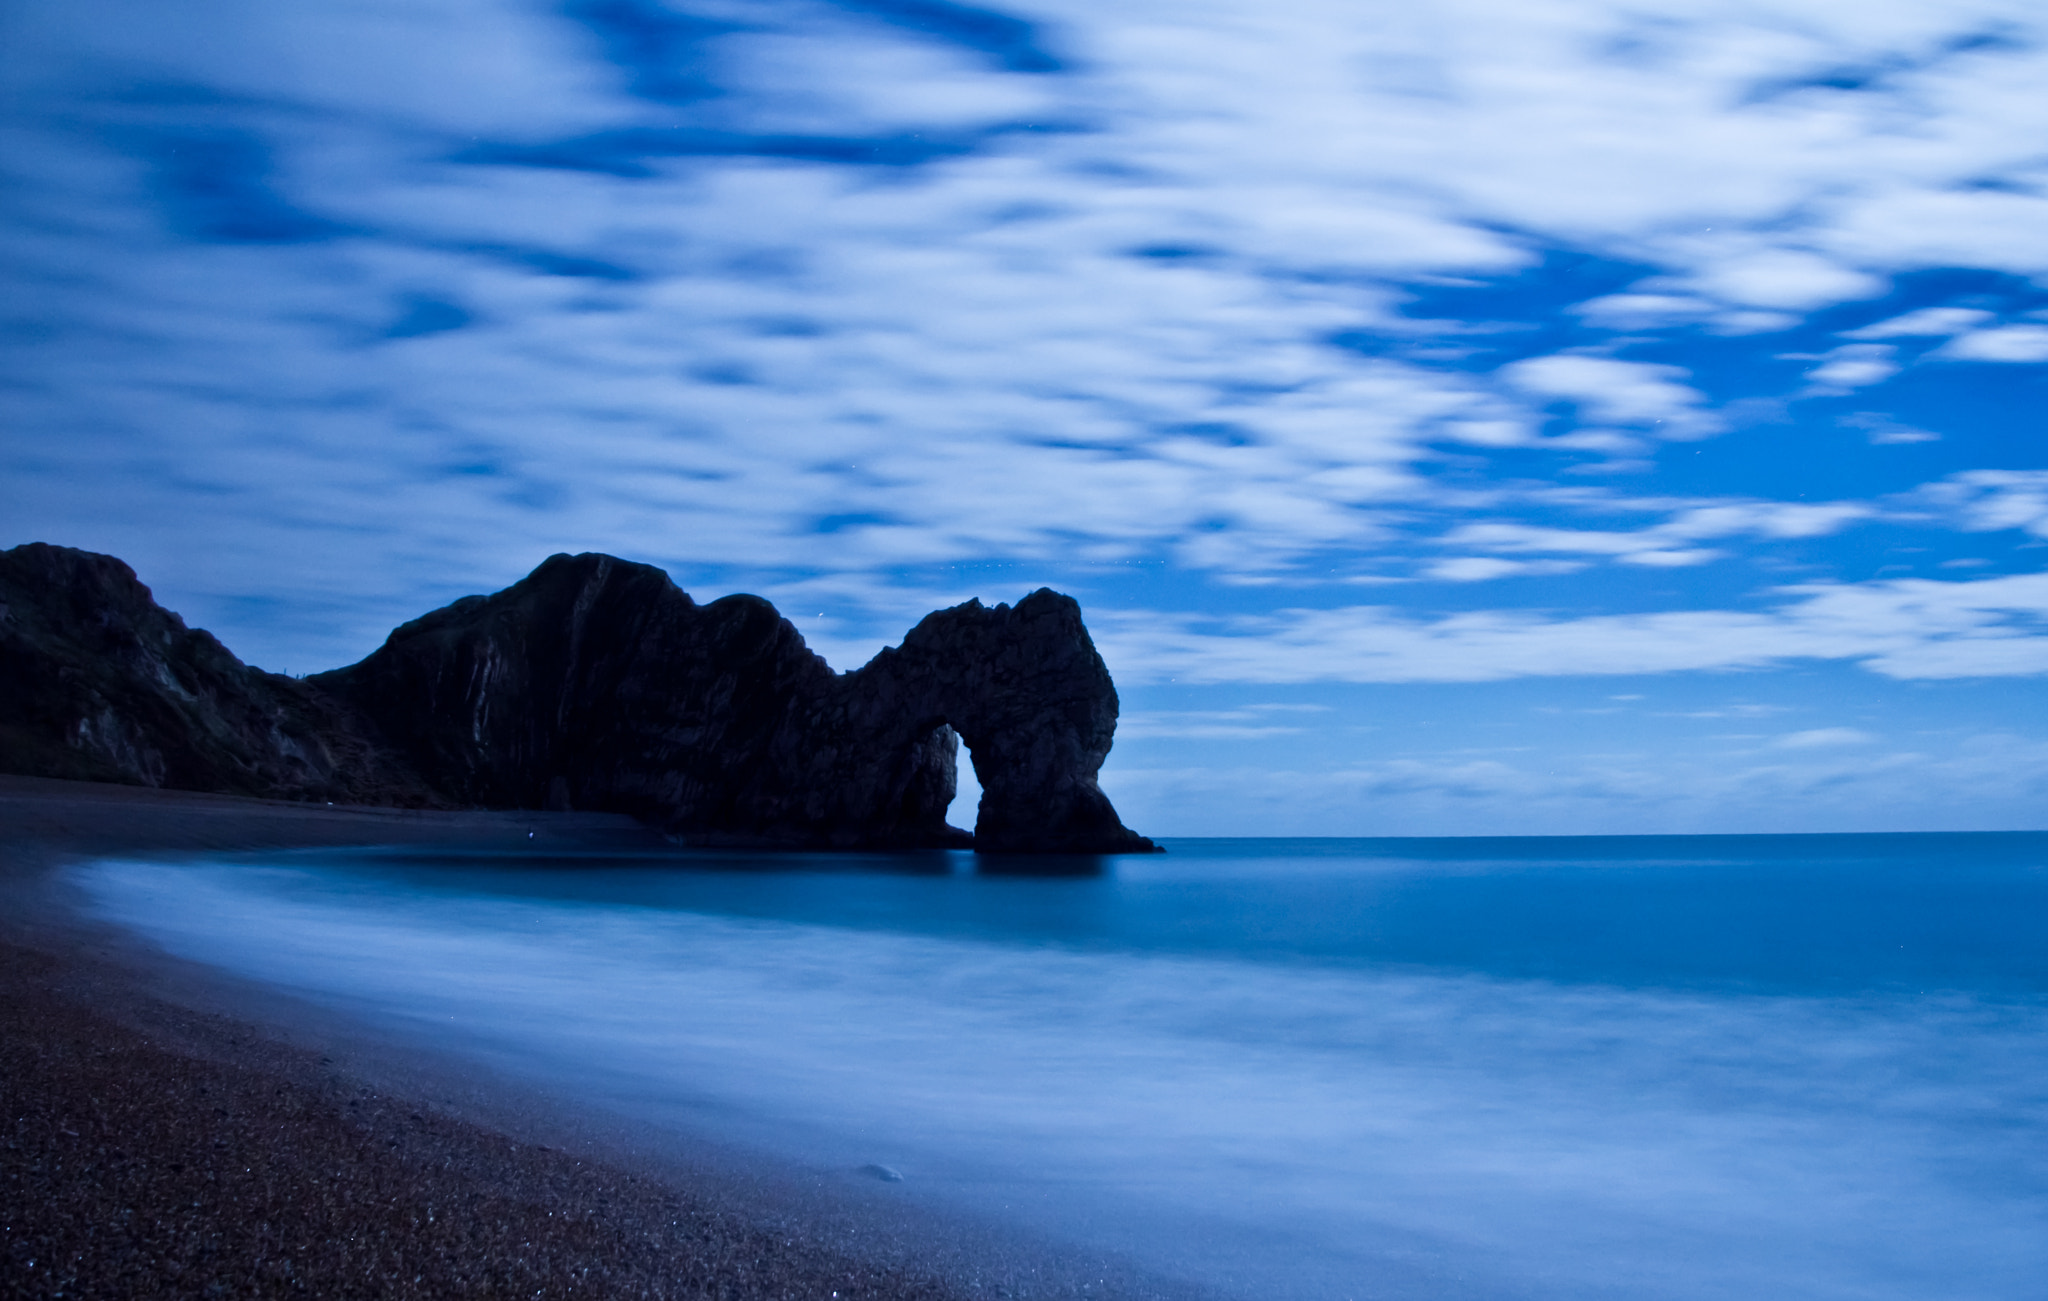 Photograph Durdle Door Winter Night by Lewis Blackburn on 500px